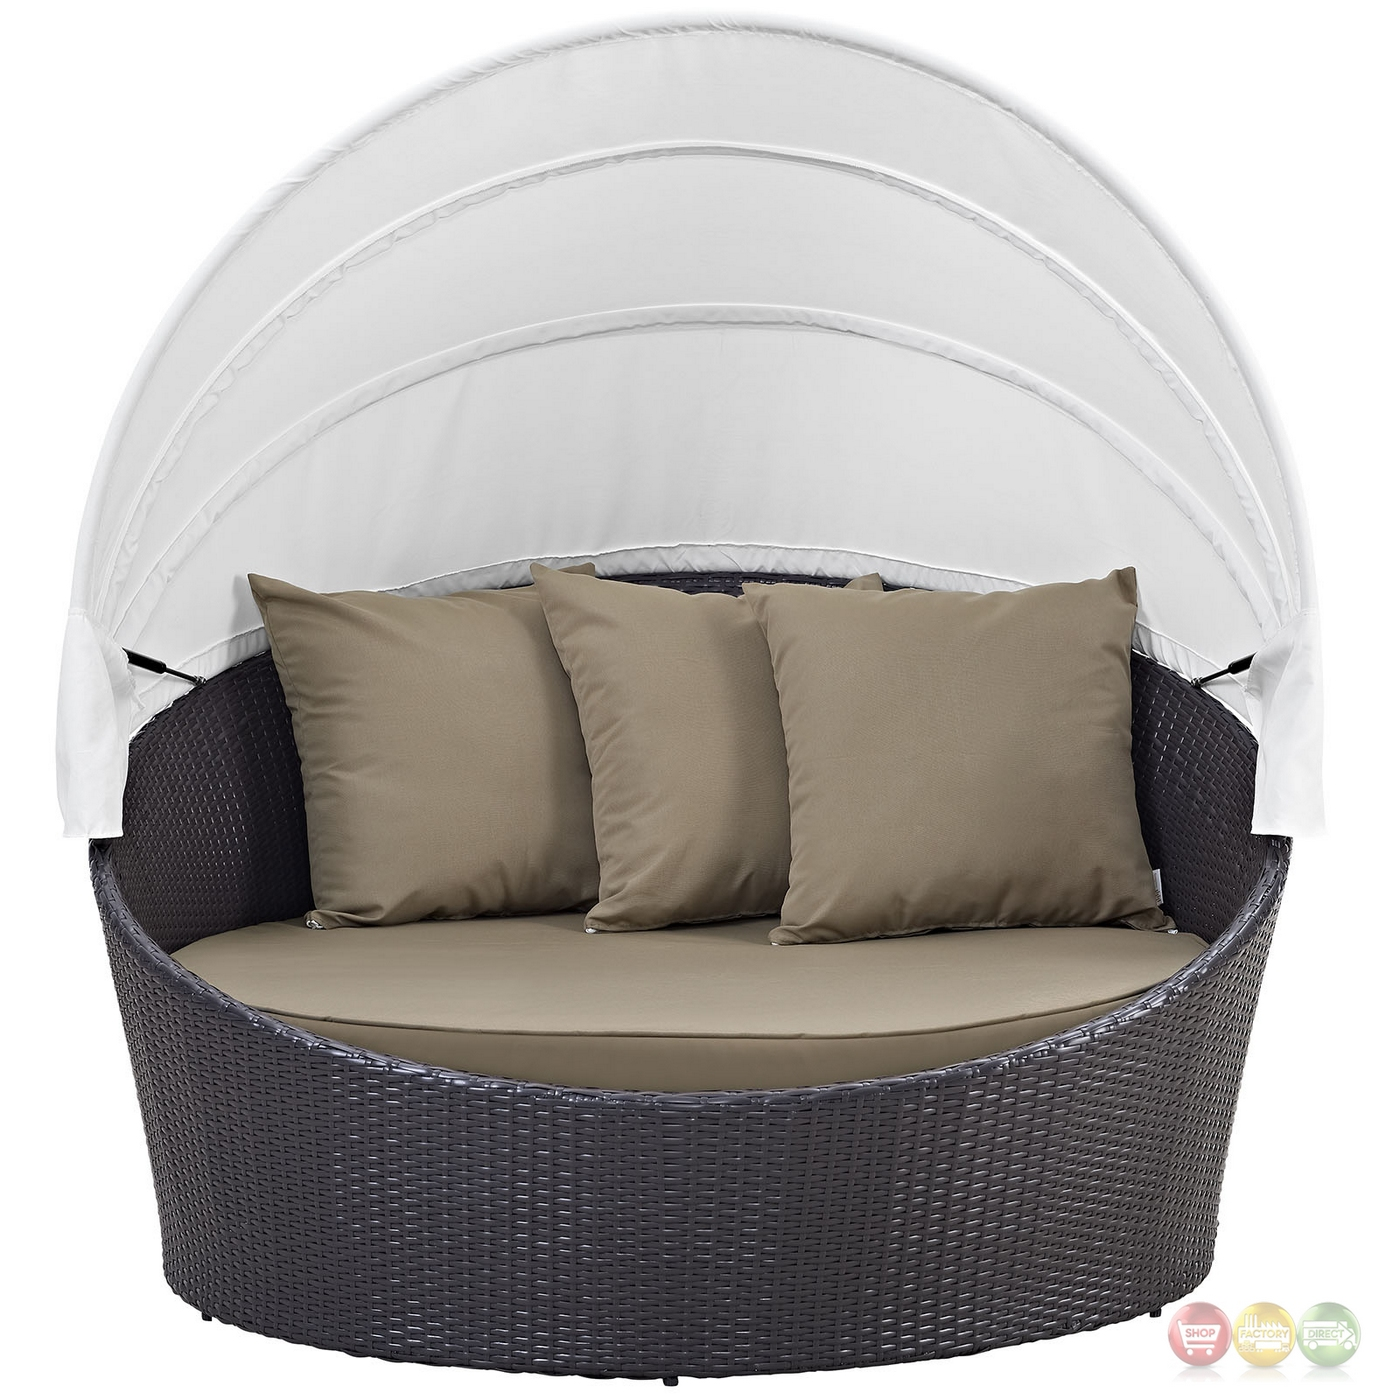 Convene Modular Rattan Outdoor Patio Canopy Daybed With